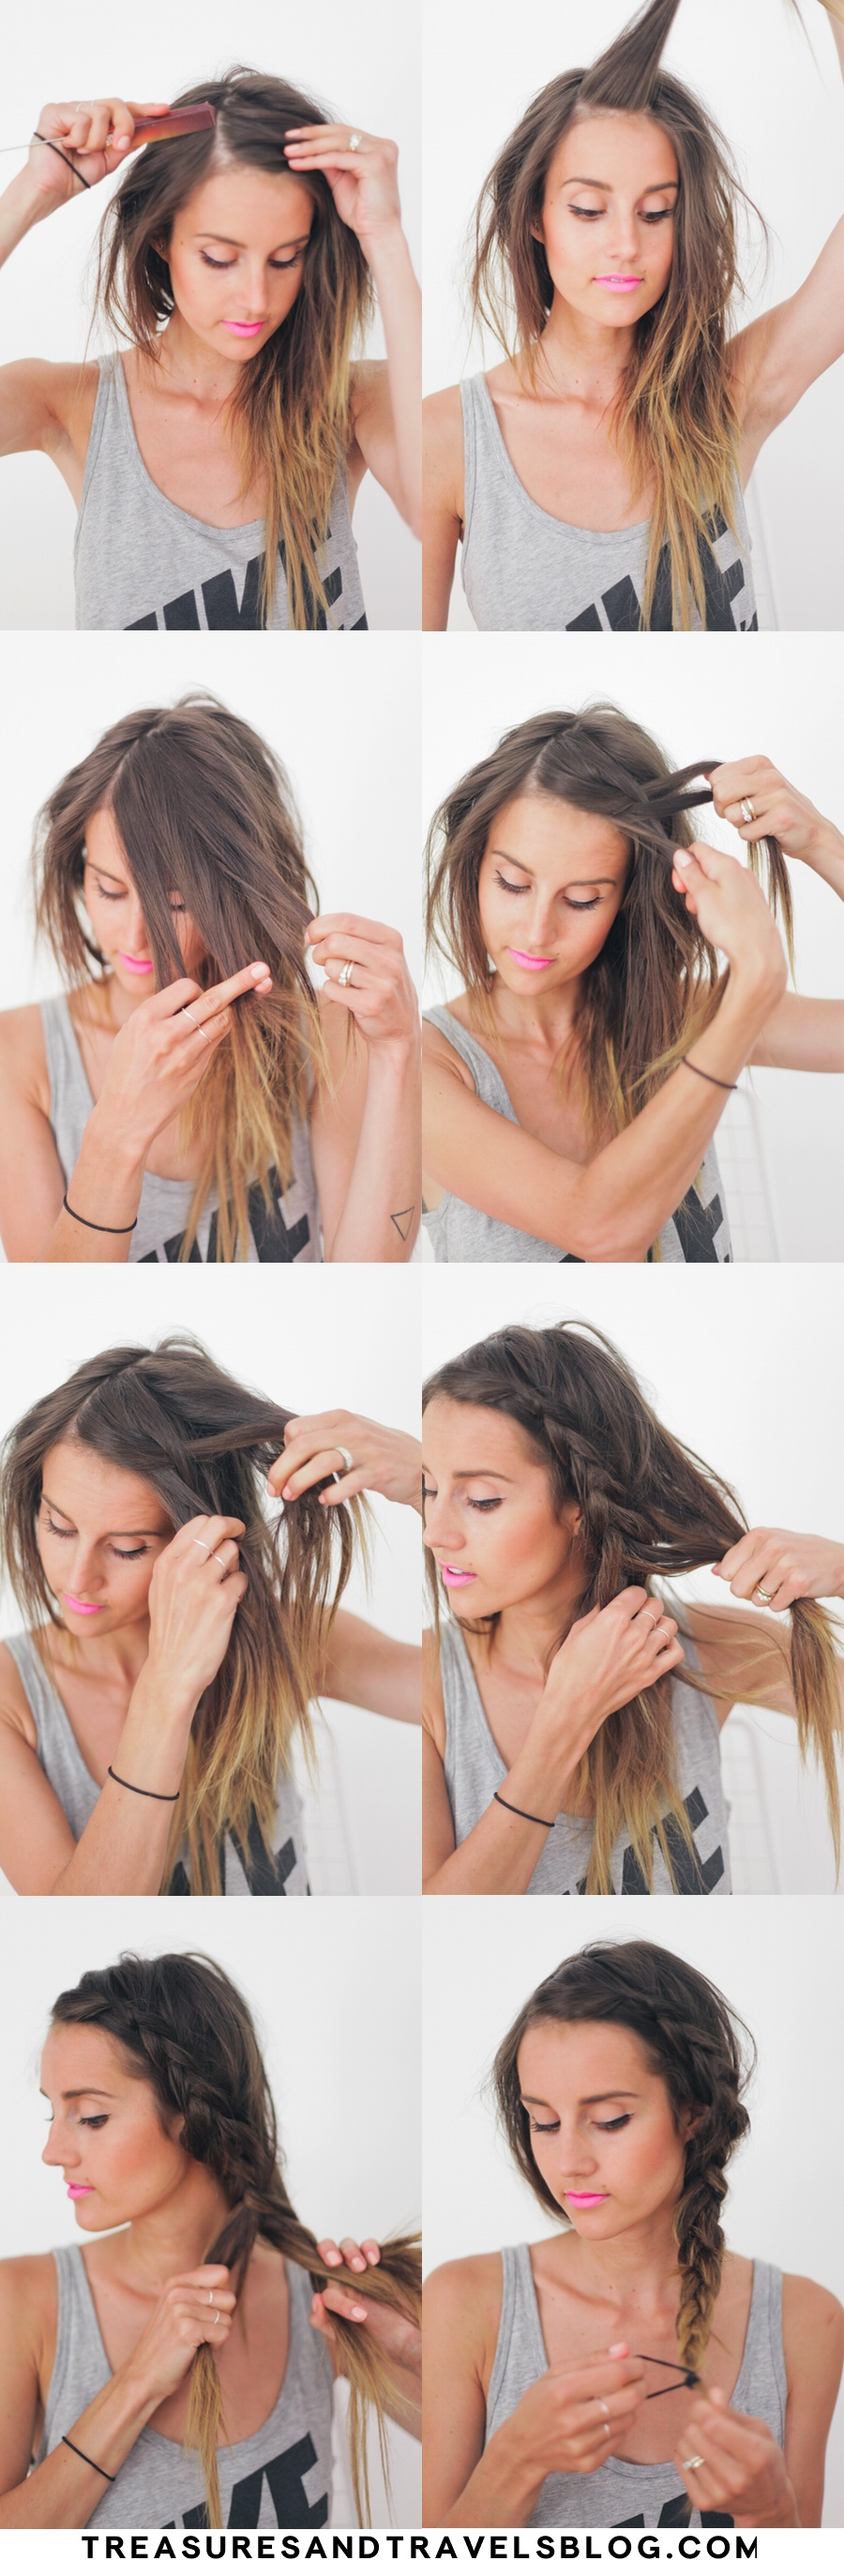 Workout Hair Care 5 Workout Hairstyles To Keep Hair Out Of Your